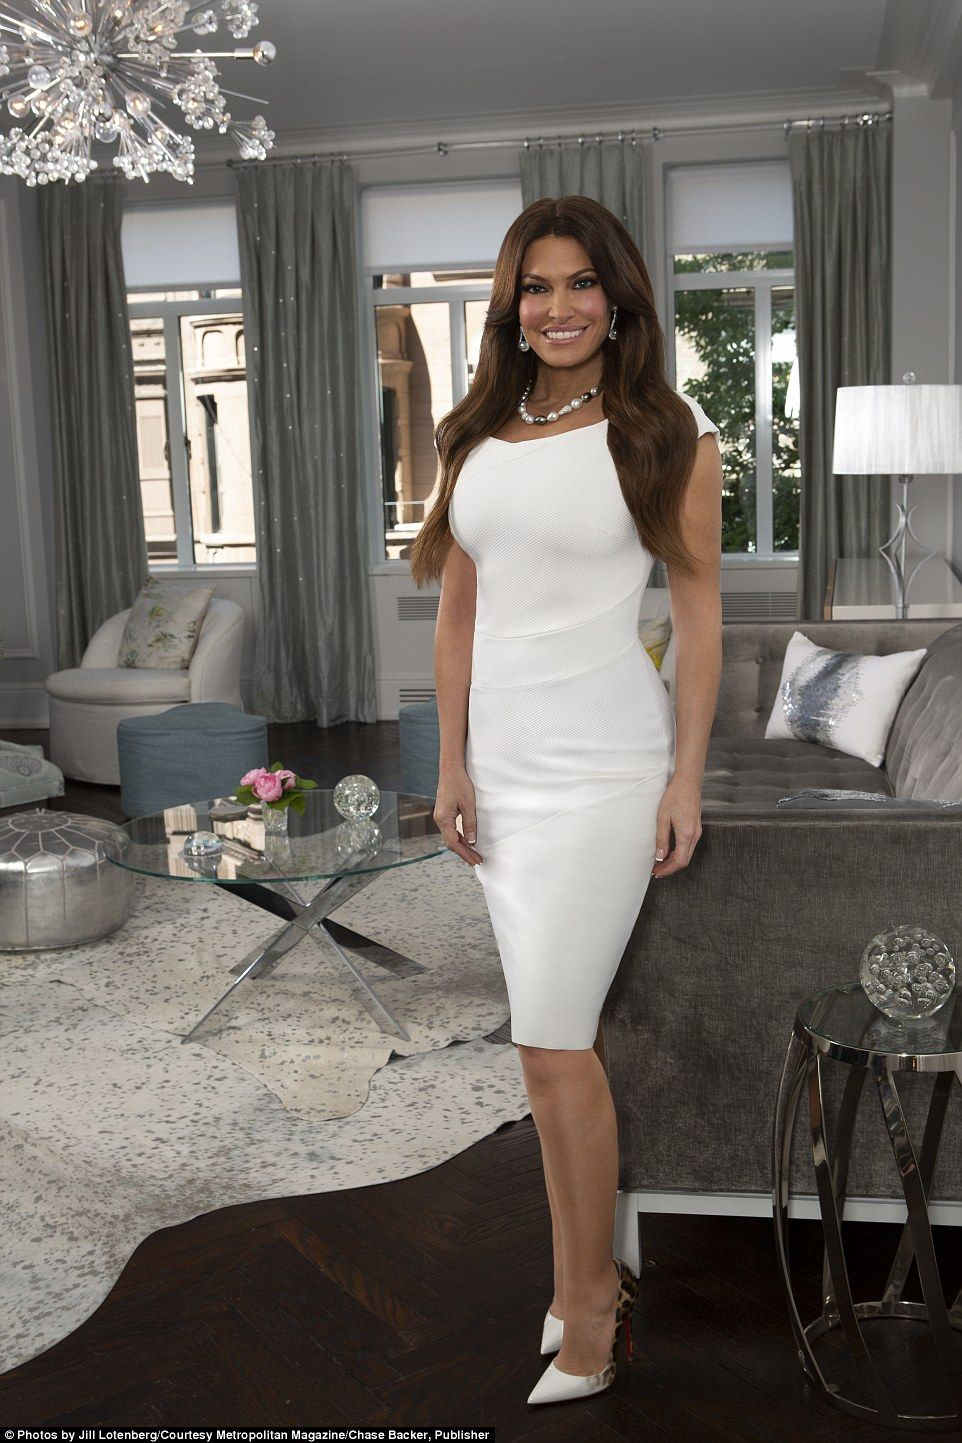 Kimberly Guilfoyle: How Kimberly Guilfoyle transformed her $3.4million Manhattan apartment.  A profile on t...